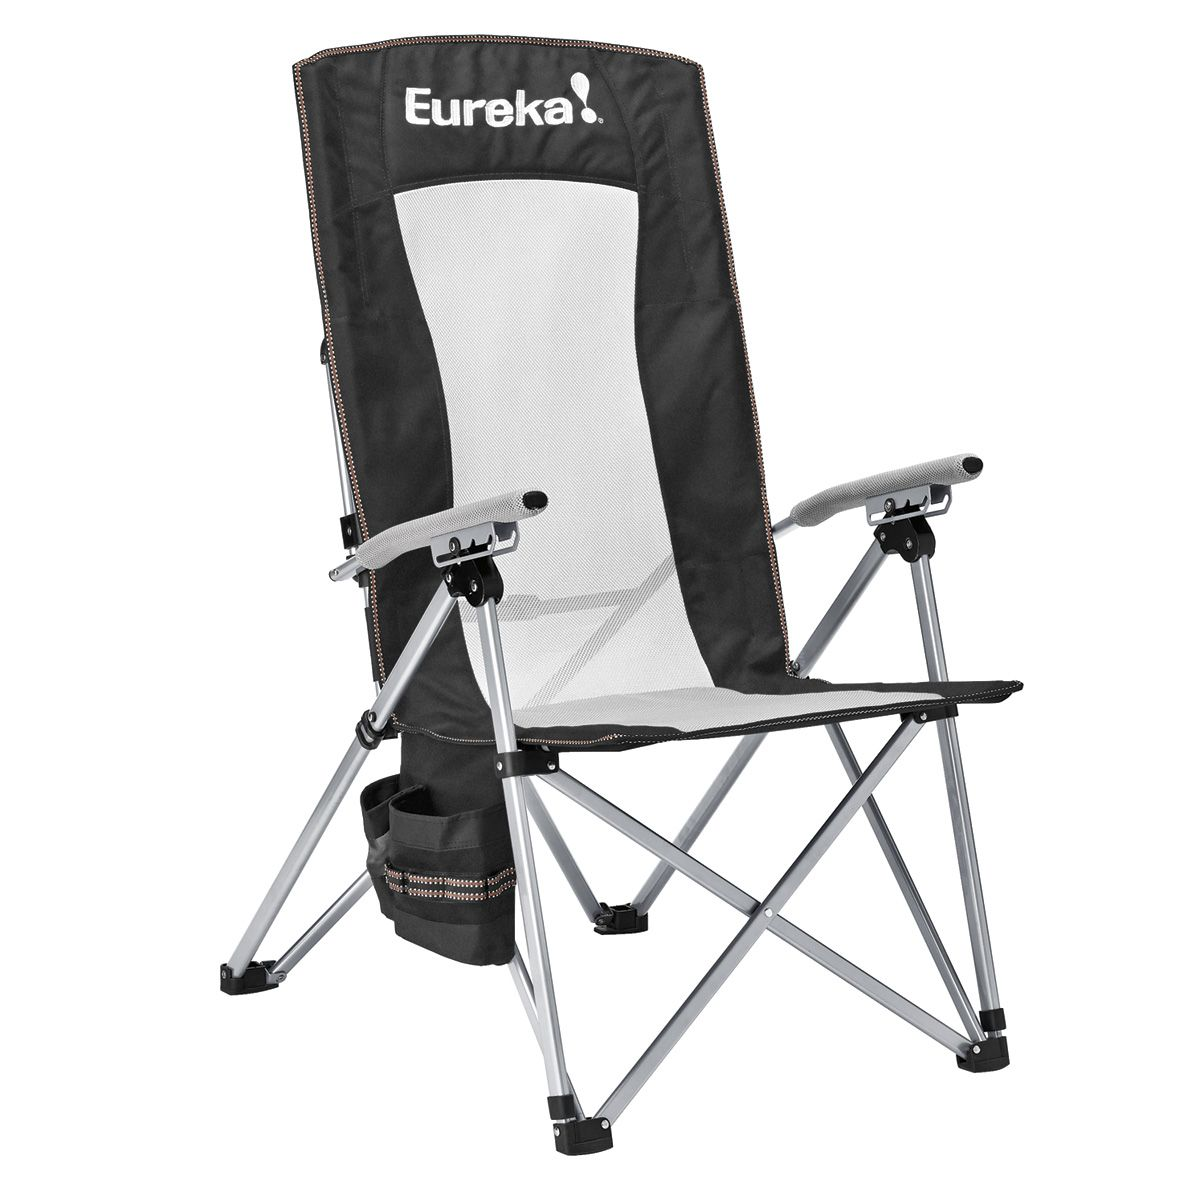 Folding camping chairs with footrest - Recliner Camp Chair Chairs Furniture Eureka